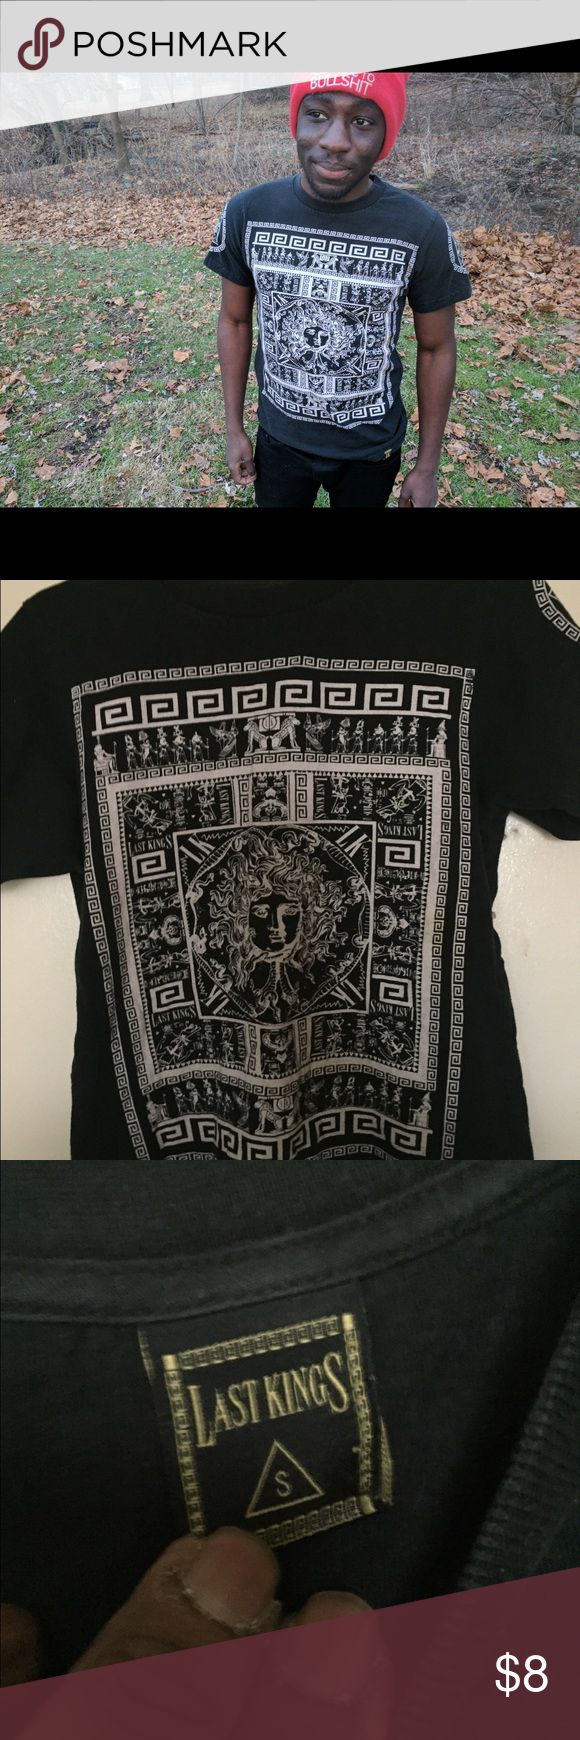 Design your own t-shirt hamilton - From Tyga Last Kings Collection Last King T Shirt Size Small Shirts Tees Short Sleeve